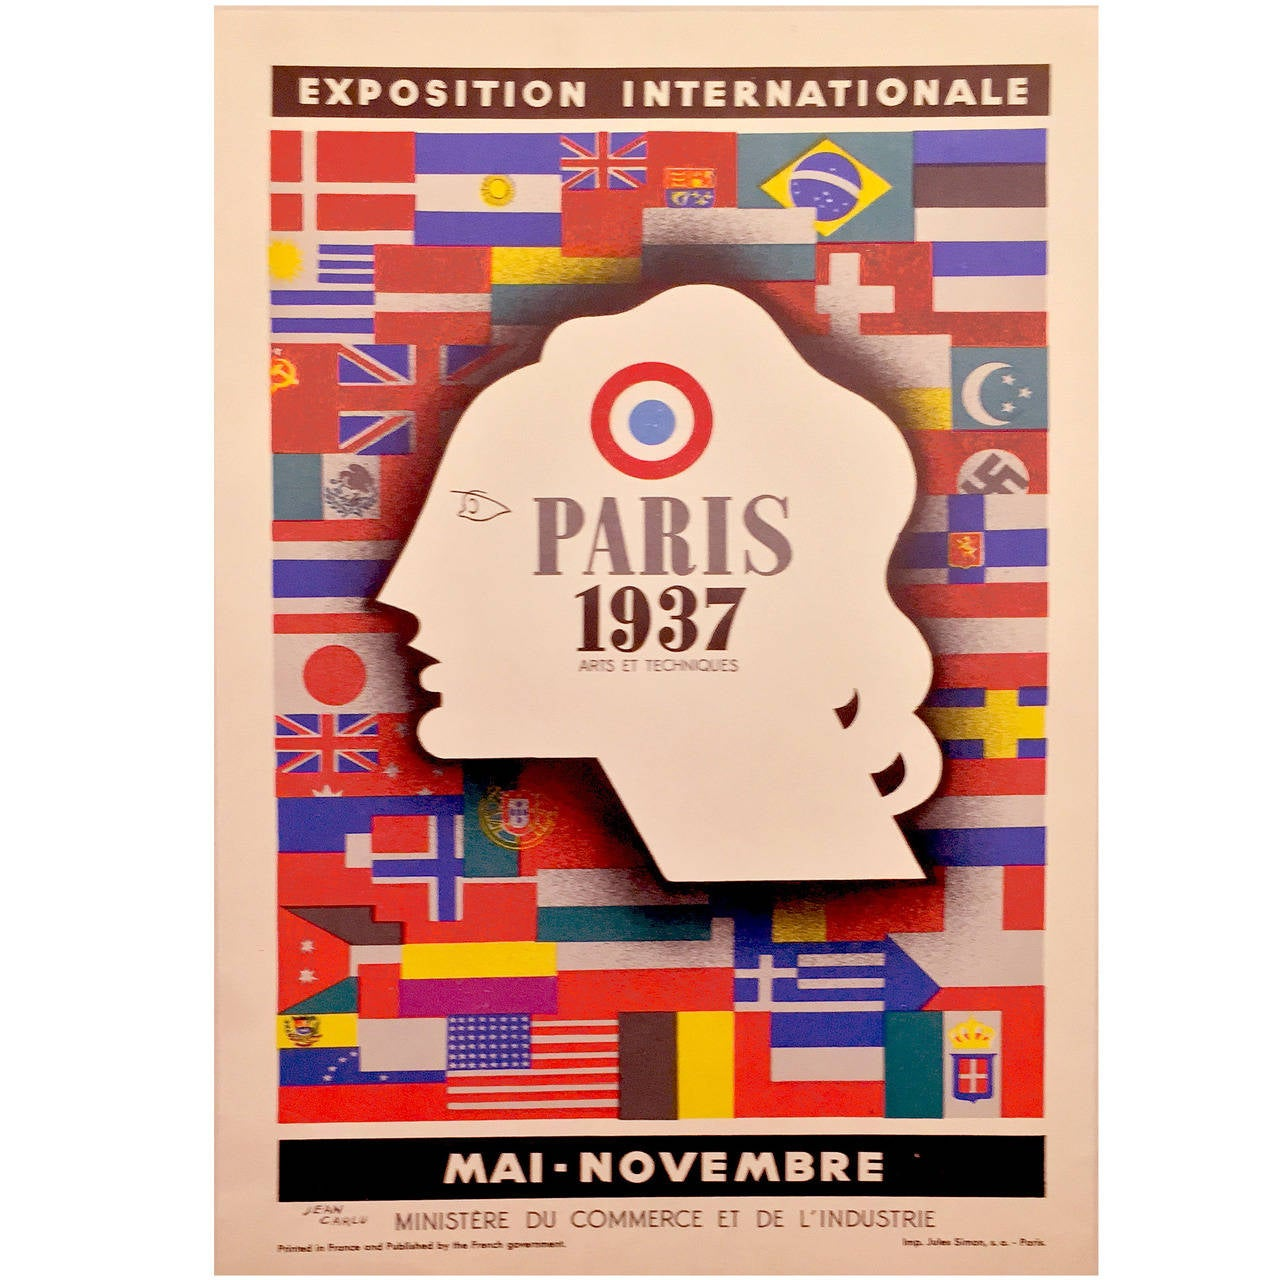 Art Deco Period International Exposition in Paris 1937 Poster by Jean Carlu